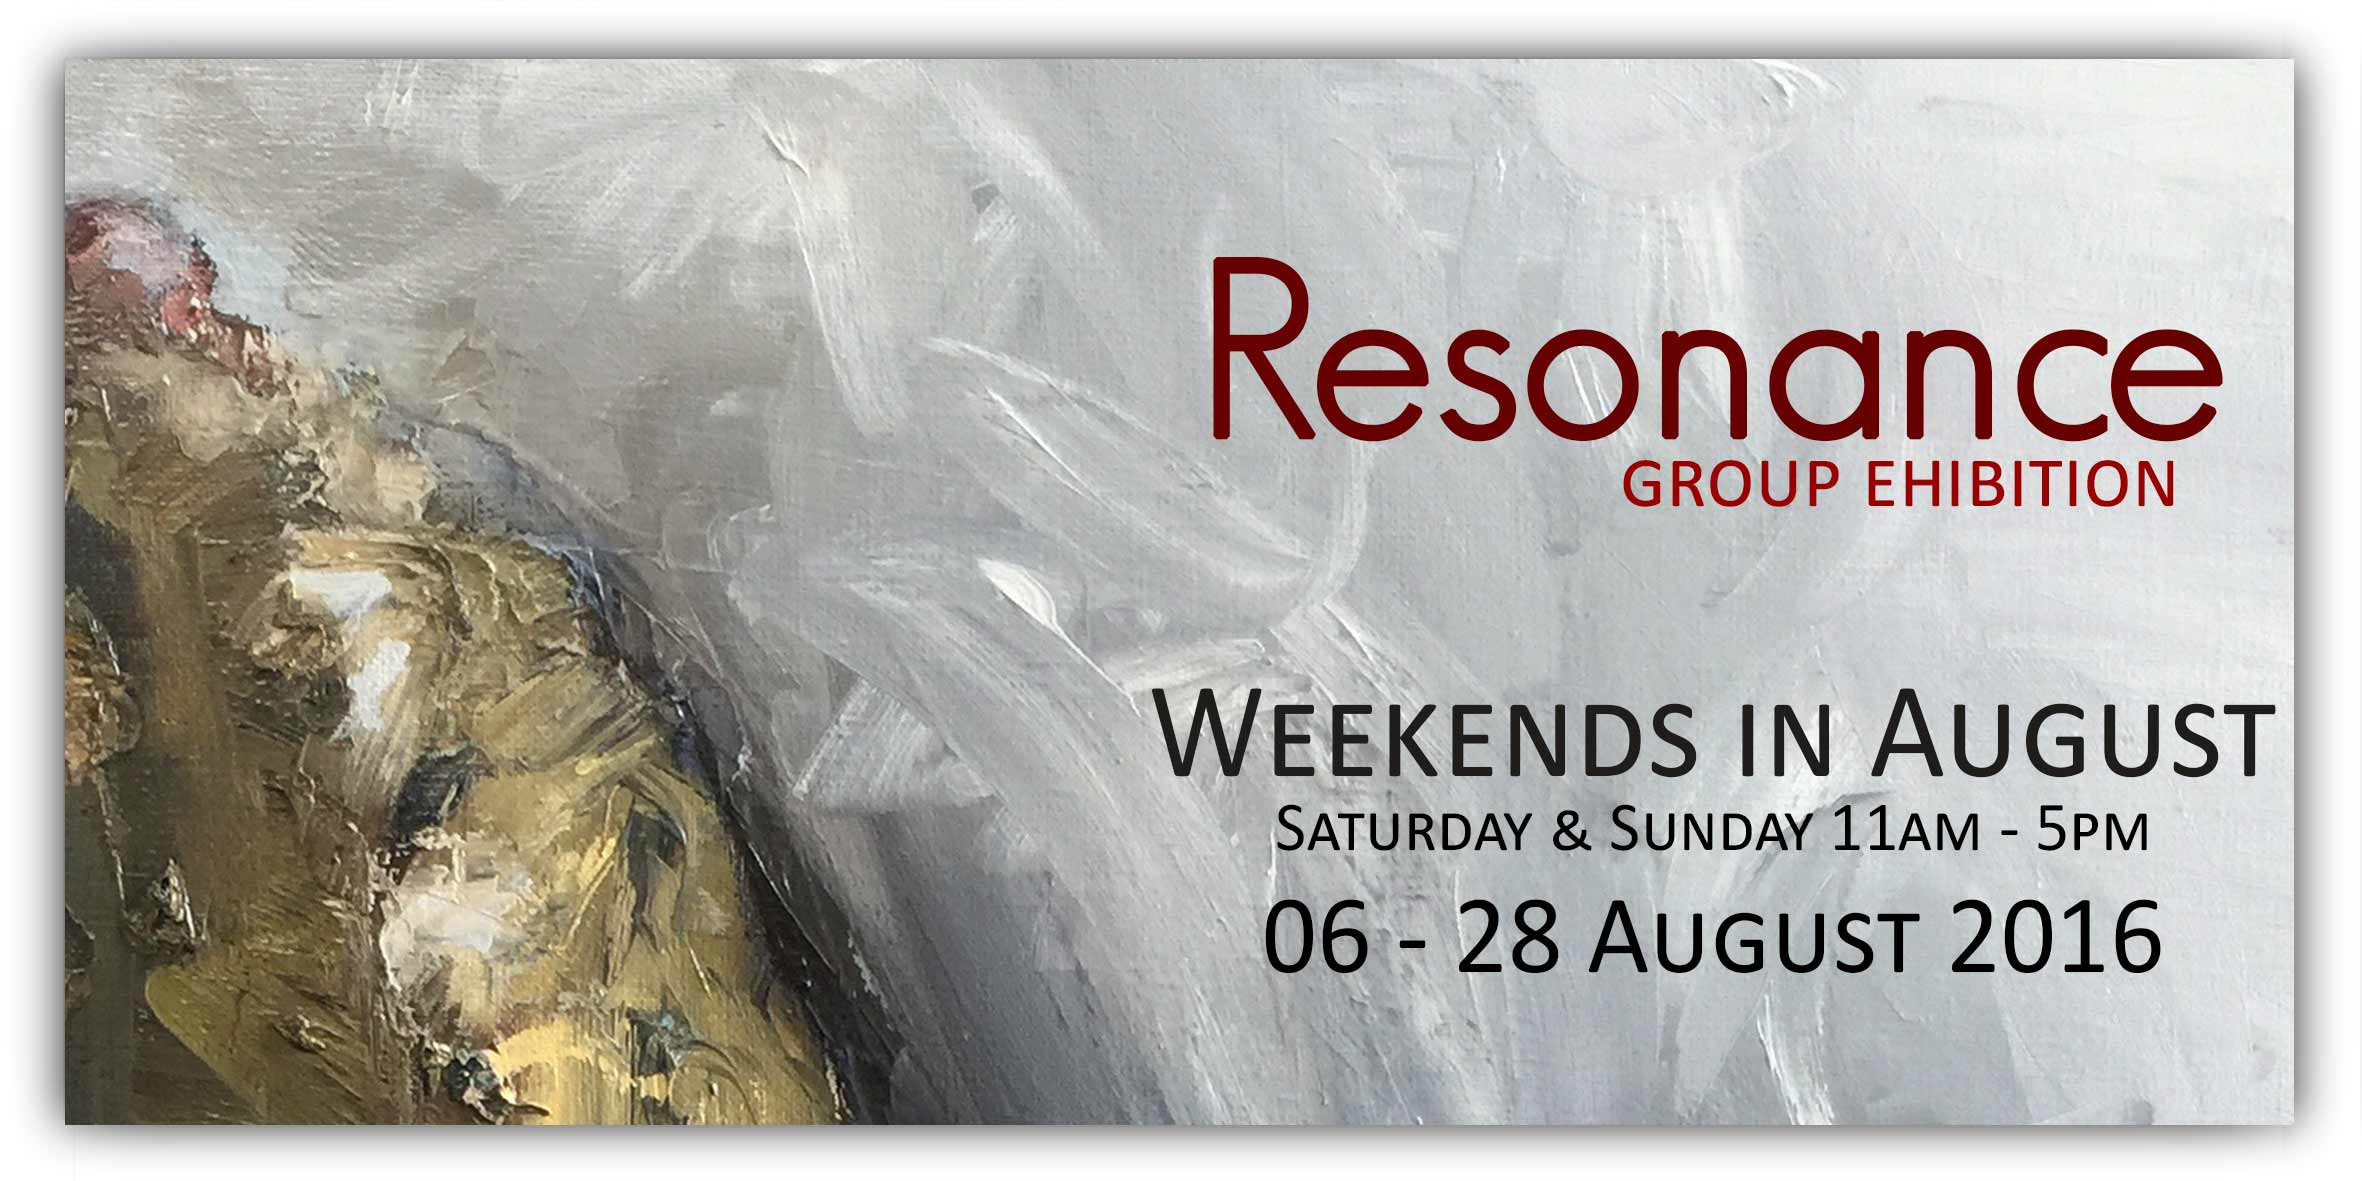 View Exhibition at Artsite Gallery. 06 - 28 August 2016: Resonance